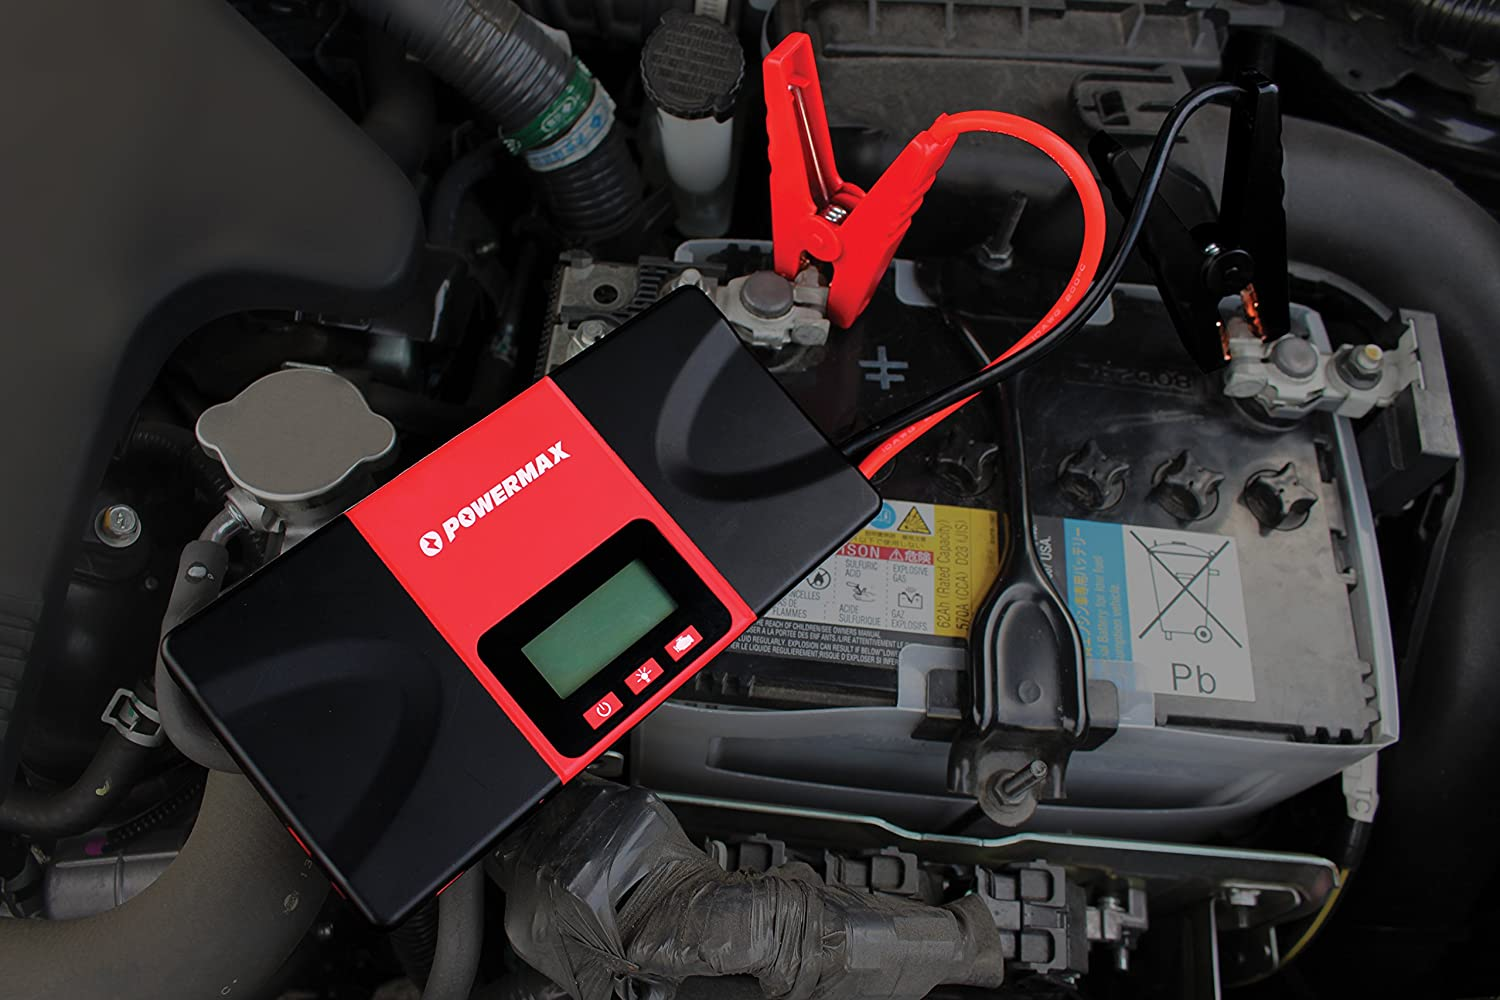 Powermax 700a Peak 18000mah Portable Car Jump Starter 2005 Dodge Charger Lx 57l V 8 Engine Firing Order And Battery Cable Routing Booster Phone With Smart Usb Charging Port Automotive